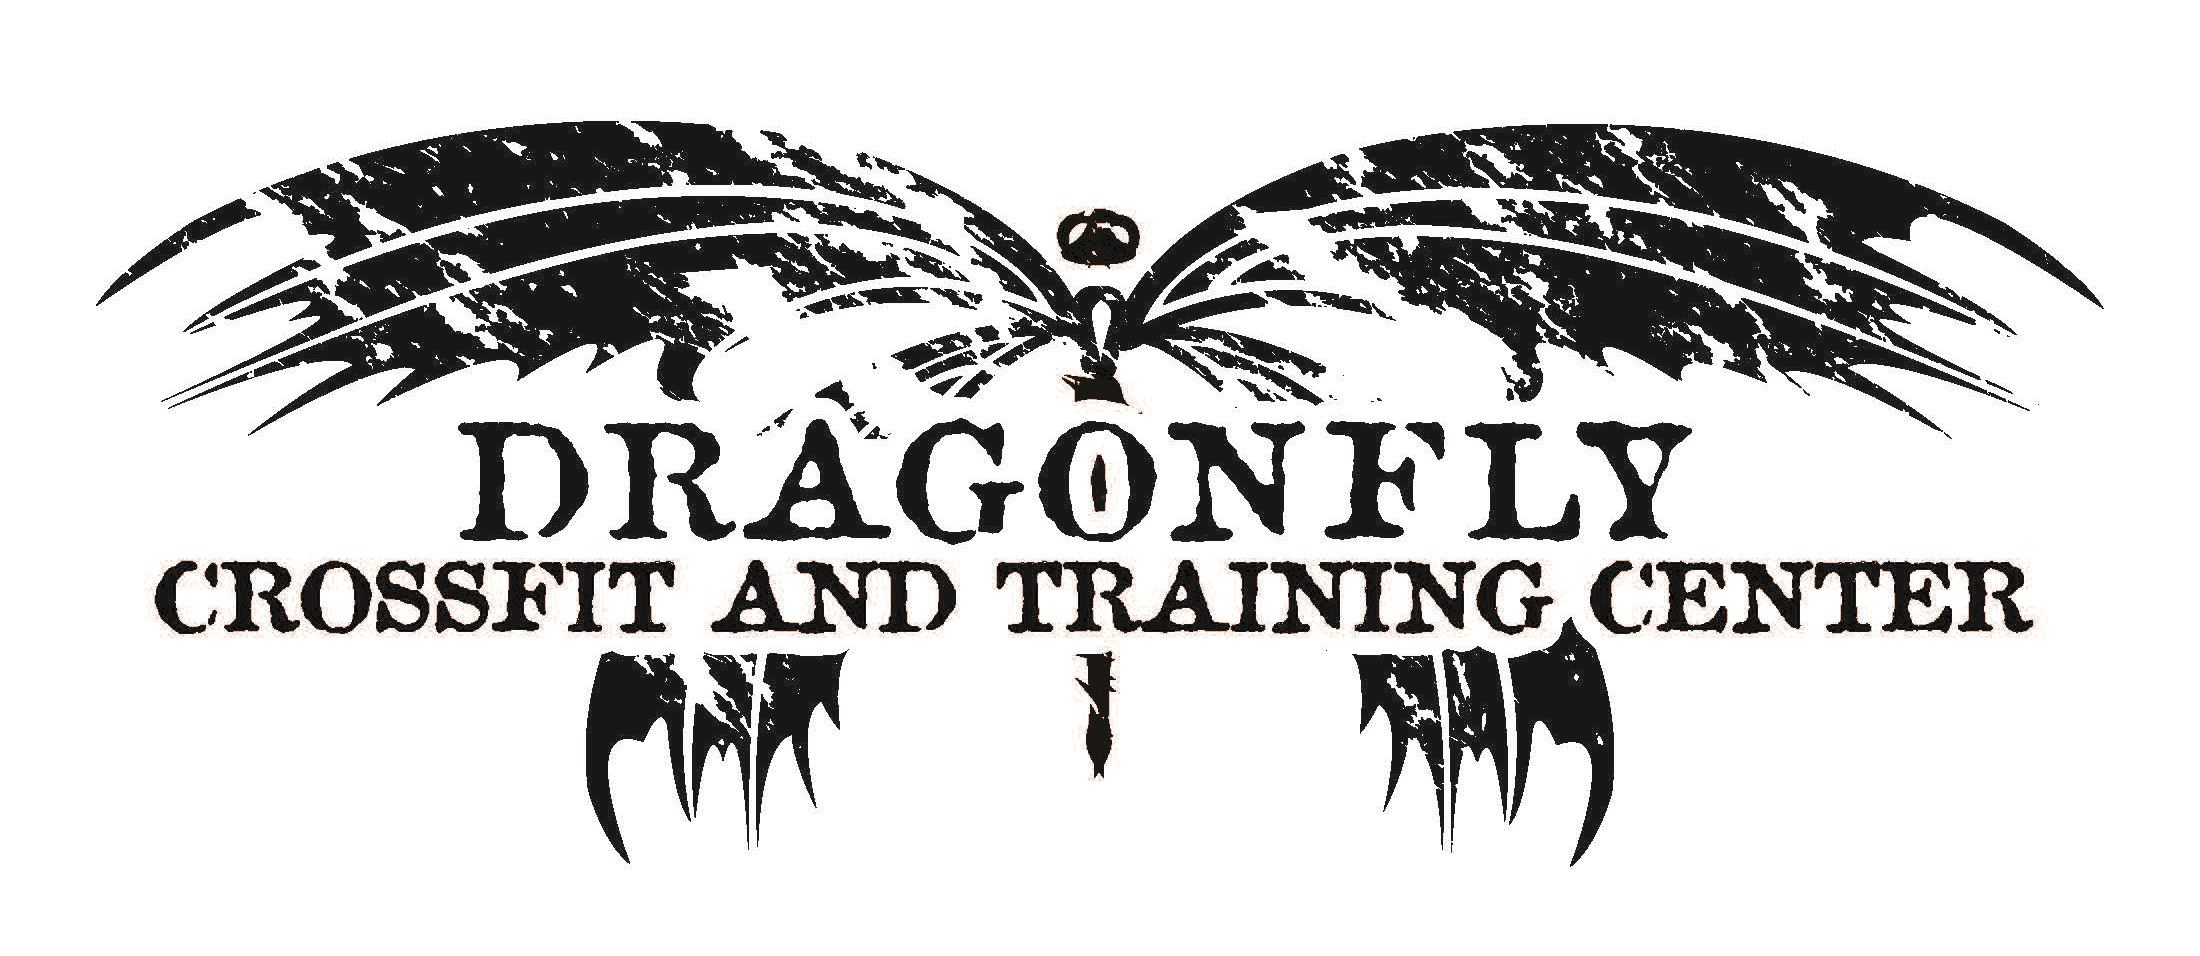 Dragonfly_Crossfit_TC 1